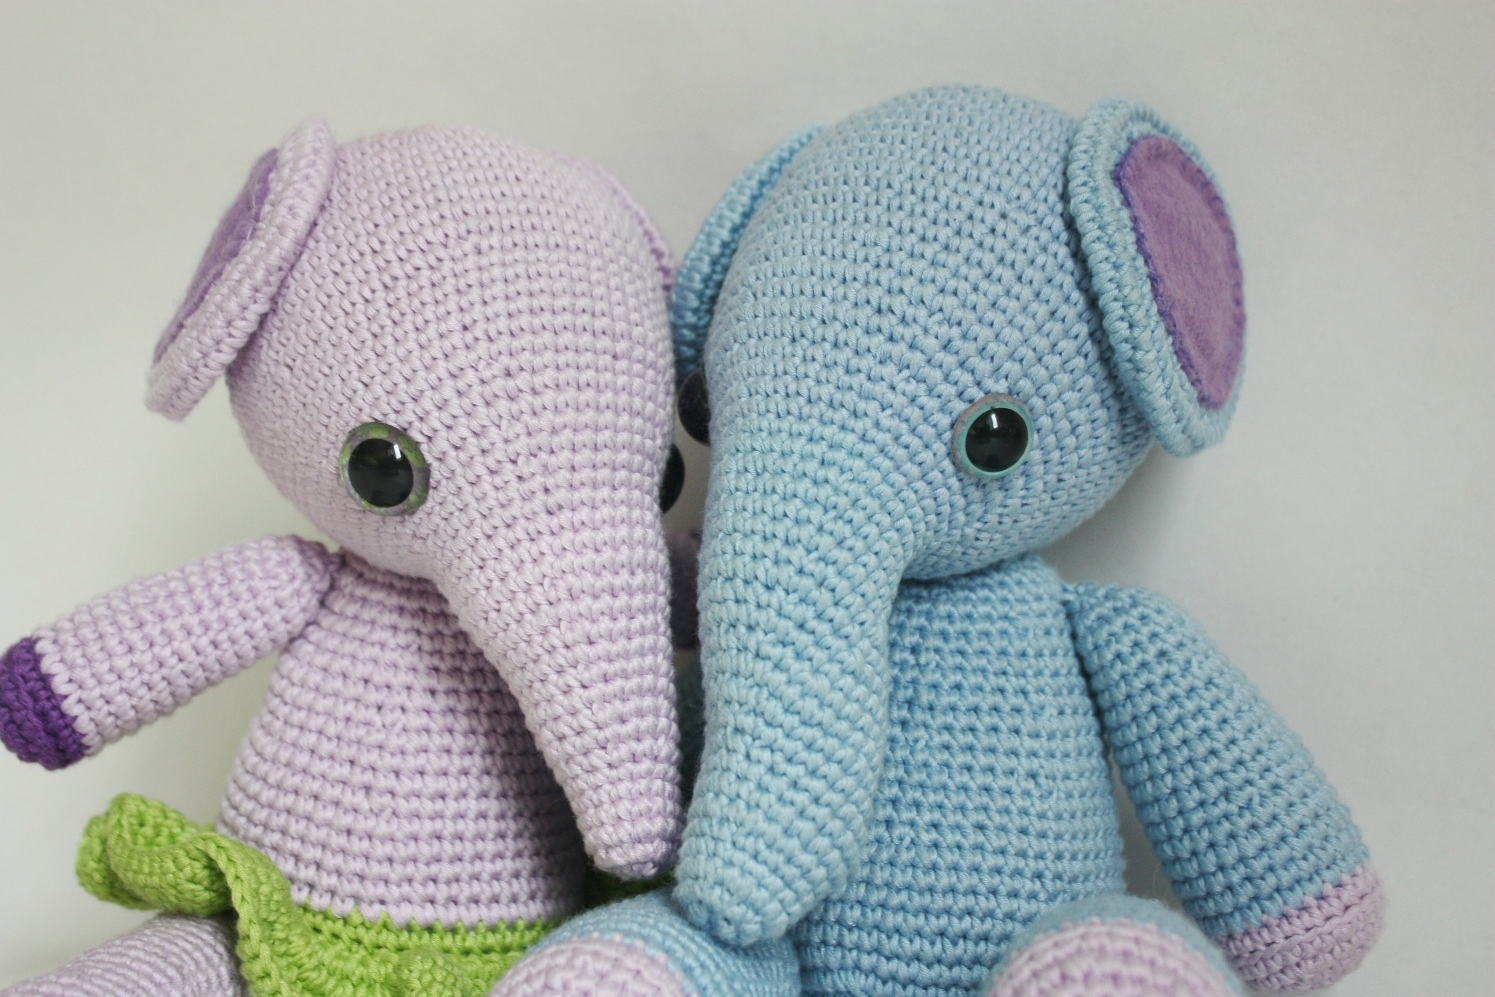 Crochet Doll Patterns On Etsy : HAPPYAMIGURUMI: New PATTERN: 2 in 1 Mio the Elephant and ...